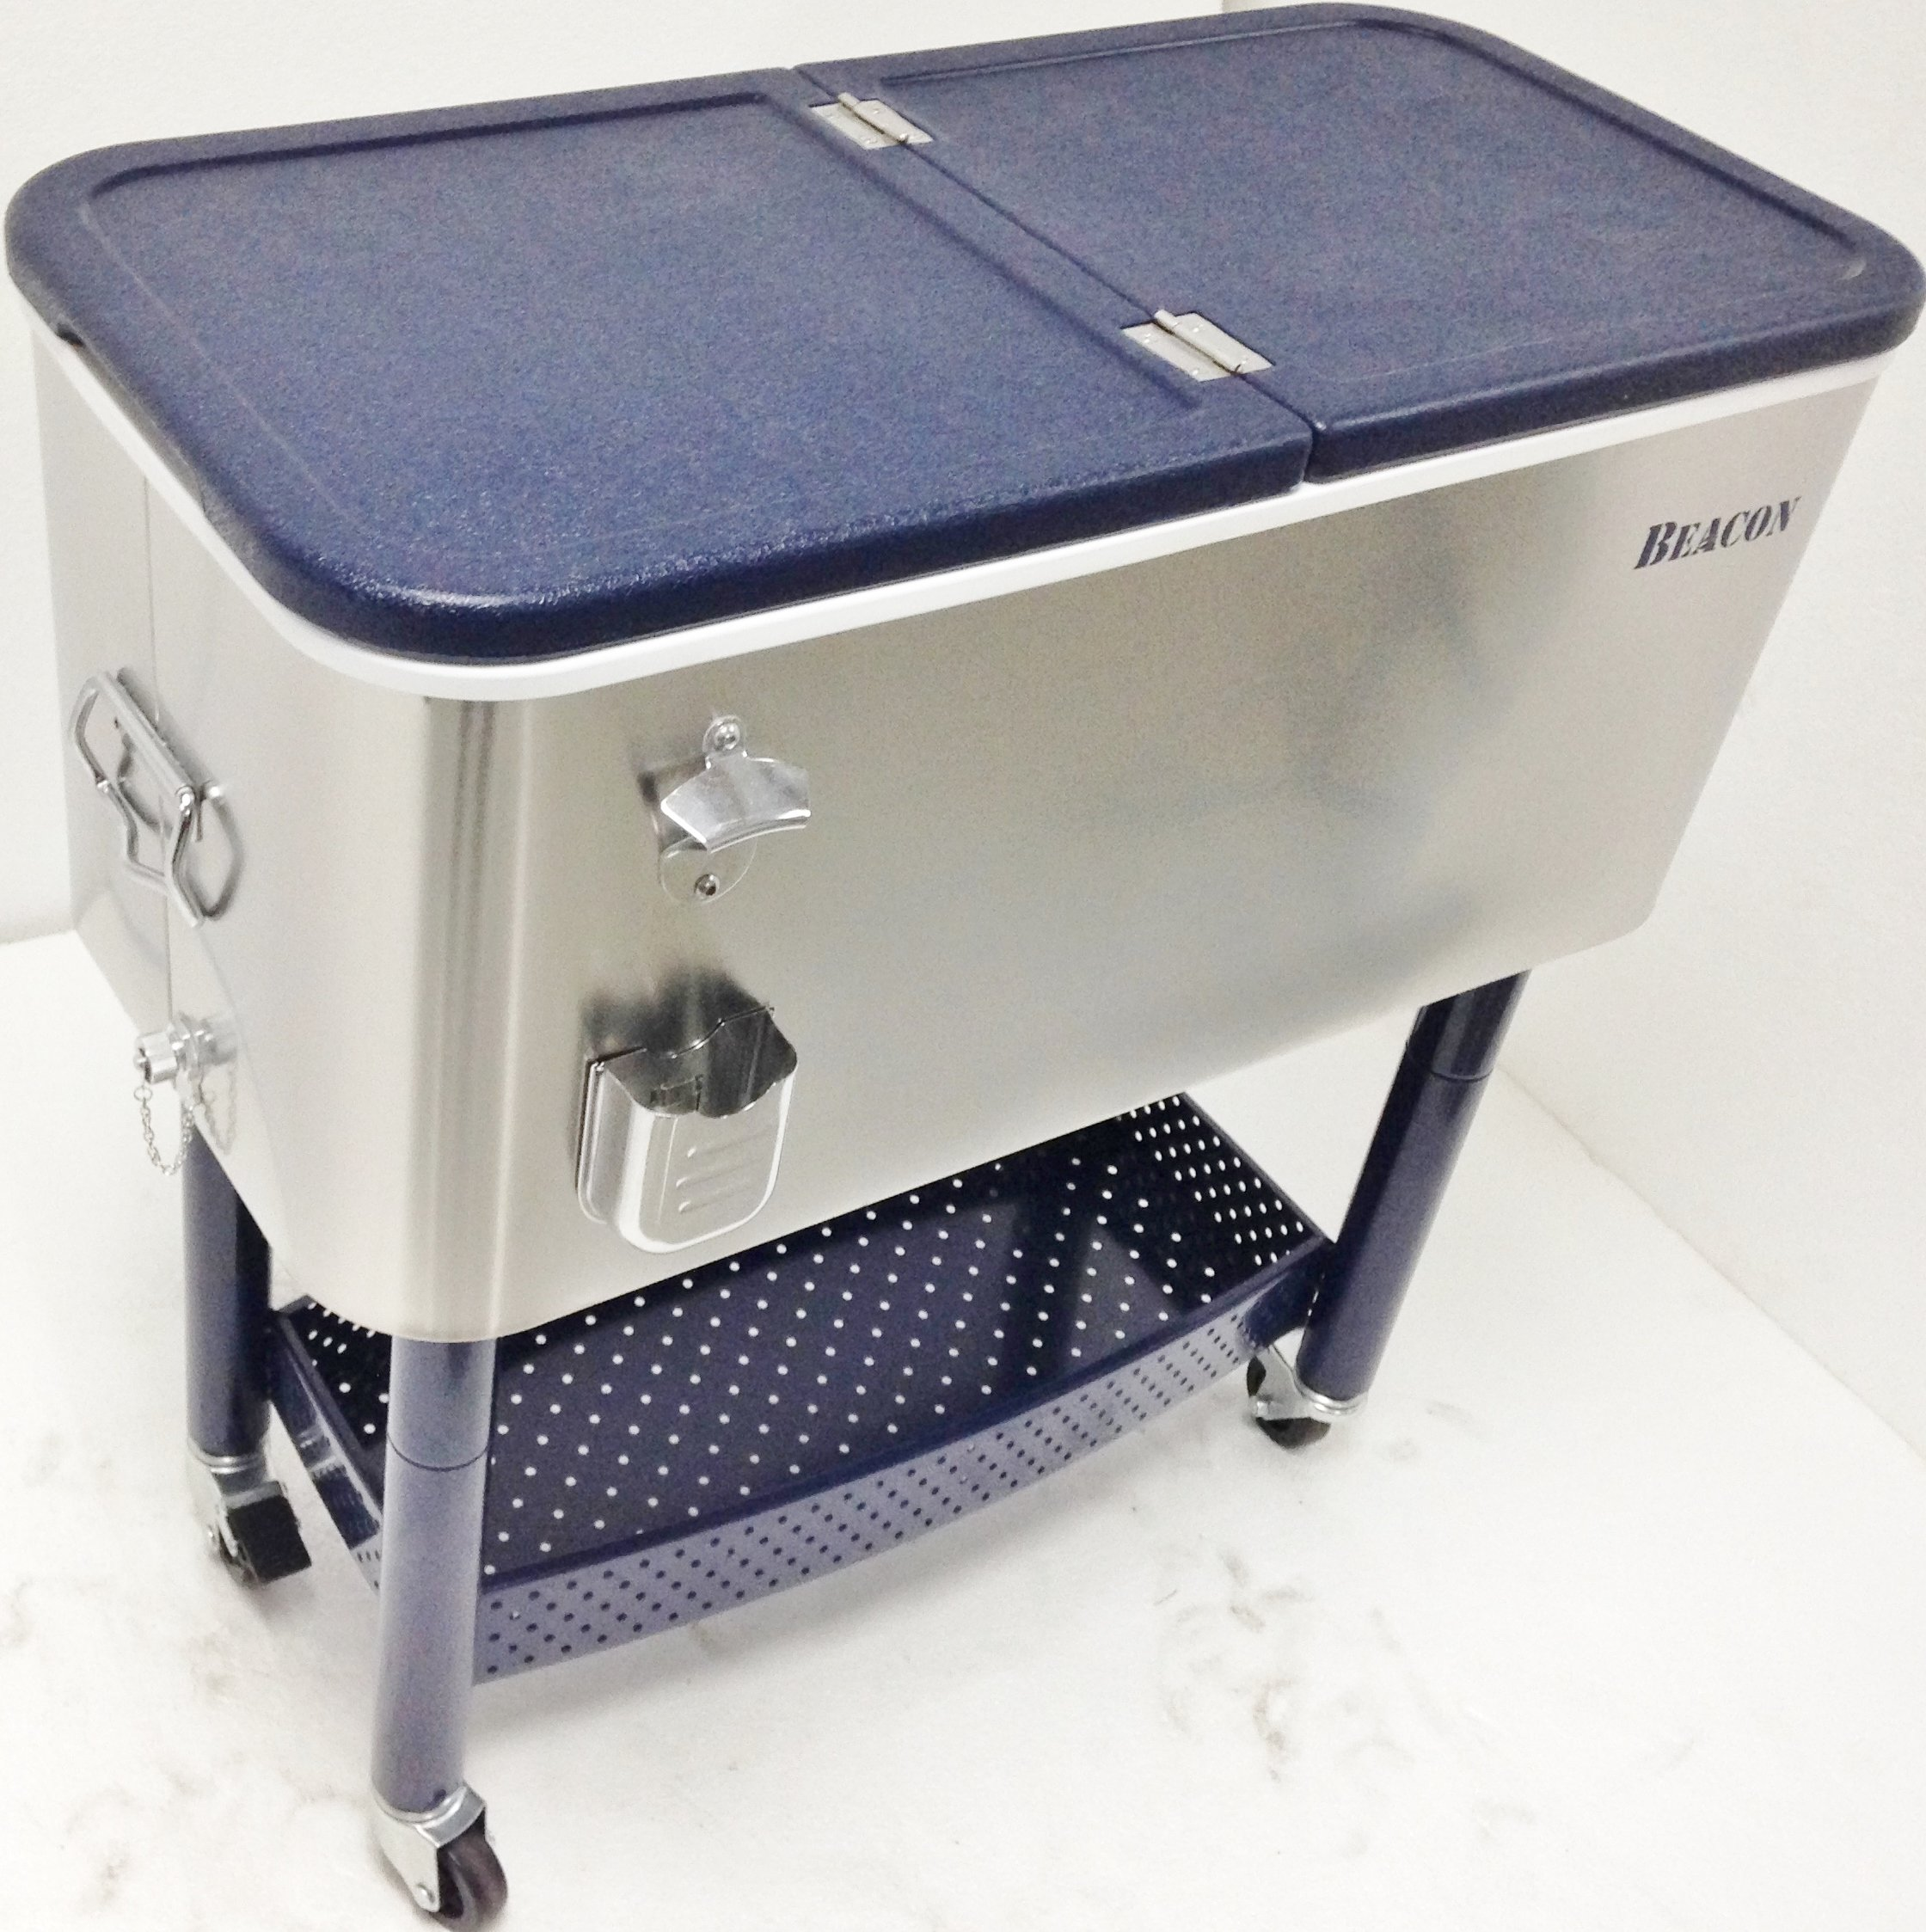 Beacon Rolling Party Cooler Stainless Steel Body with Storage & Wheel Cart, 65 Qt